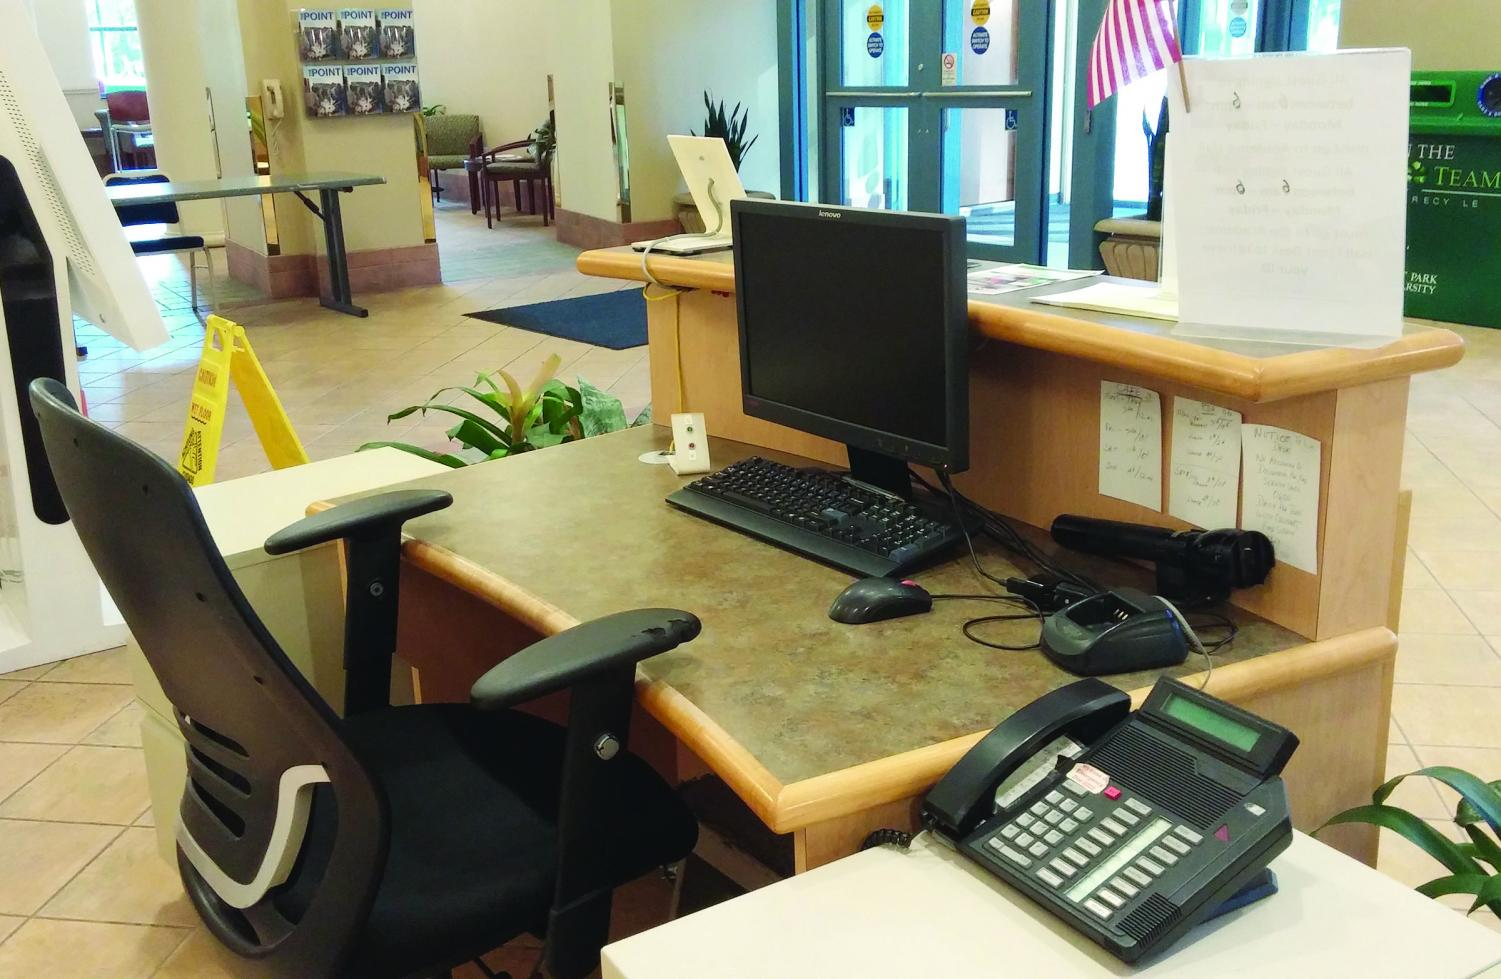 The security desk in the Lawrence Hall Lobby stands empty during daylight hours. Security guards check IDs around the clock in Academic Hall, but not in any of the other buildings on-campus.